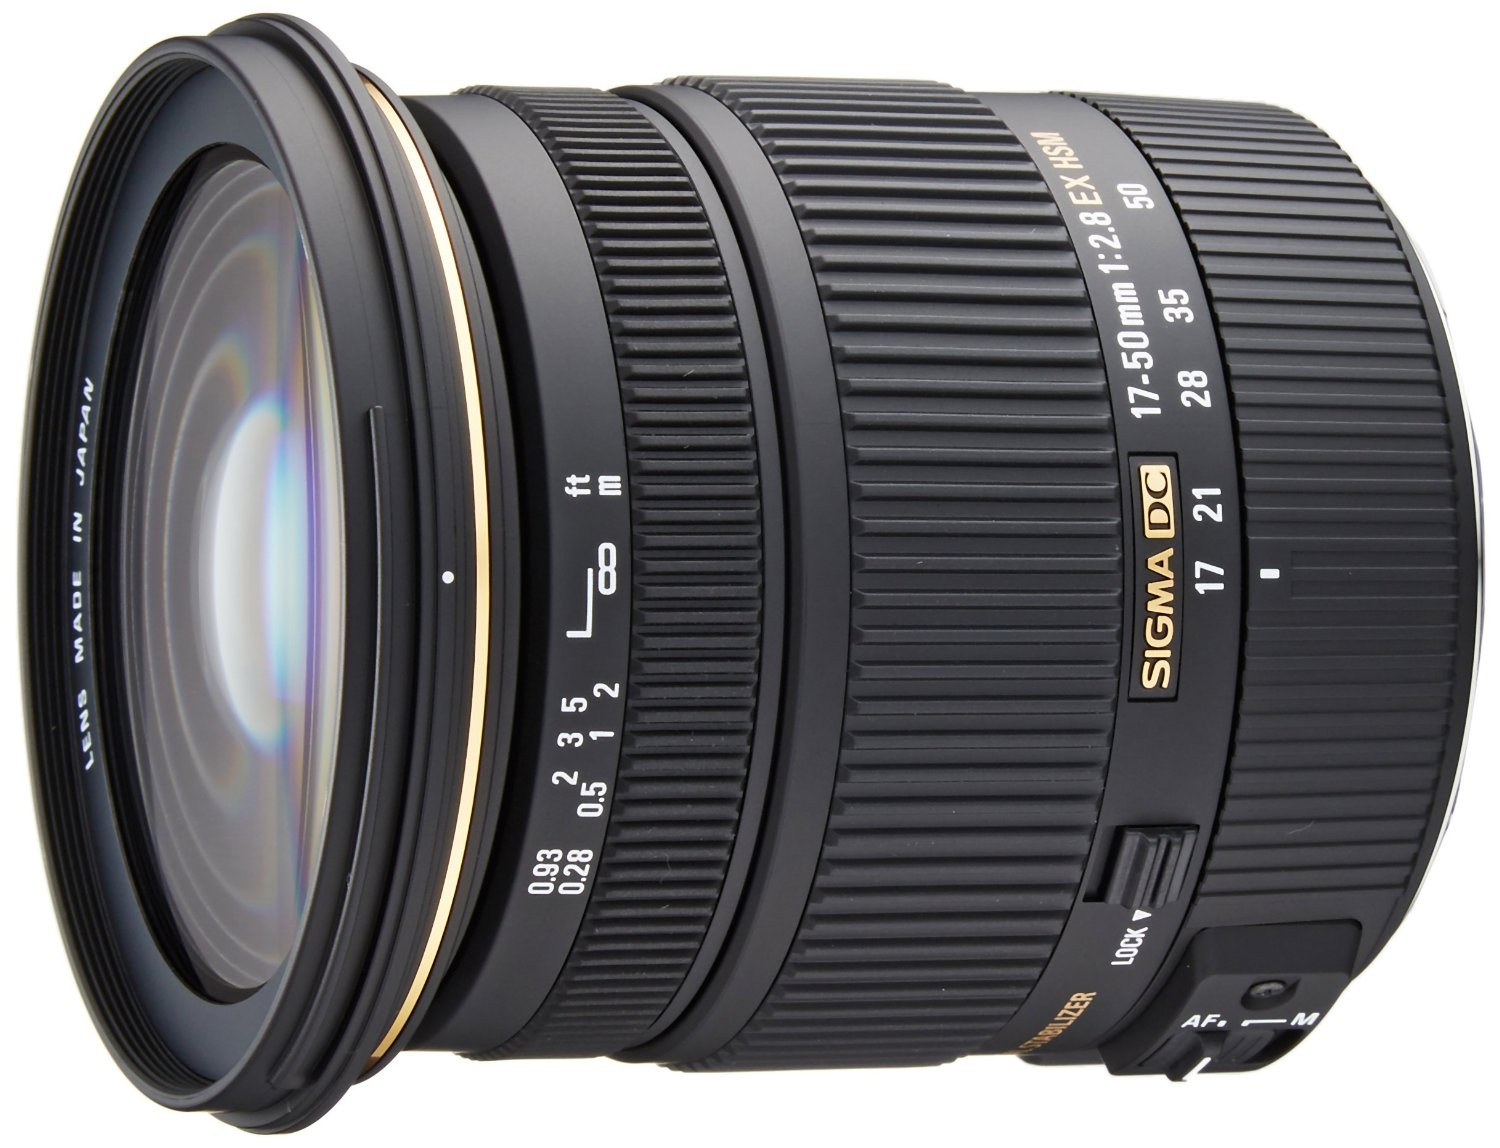 Lens RumorsTag Archives: Sigma 17-50mm F2.8 EX DC OS HSM lens deals/ cheapest price				Hot Deal: Sigma 17-50mm f/2.8 EX DC OS HSM Zoom Lens for $285!							Hot Deal: Sigma 17-50mm f/2.8 EX DC OS HSM FLD Lens for $249.99							Hot Deal: Sigma 17-50mm f/2.8 EX DC OS HSM FLD Lens (Grey Market) for $249.95							Hot Deal: Sigma 17-50mm f/2.8 EX DC OS HSM FLD Lens for $349							Hot Deal: Sigma 17-50mm f/2.8 EX DC OS HSM FLD Lens for $299							Sigma Lenses Price Drops at Amazon							Hot Deal: Sigma 17-50mm F/2.8 EX DC OS HSM Lens for $399							Hot Deal: Sigma 17-50mm F/2.8 EX DC OS HSM Lens for $399